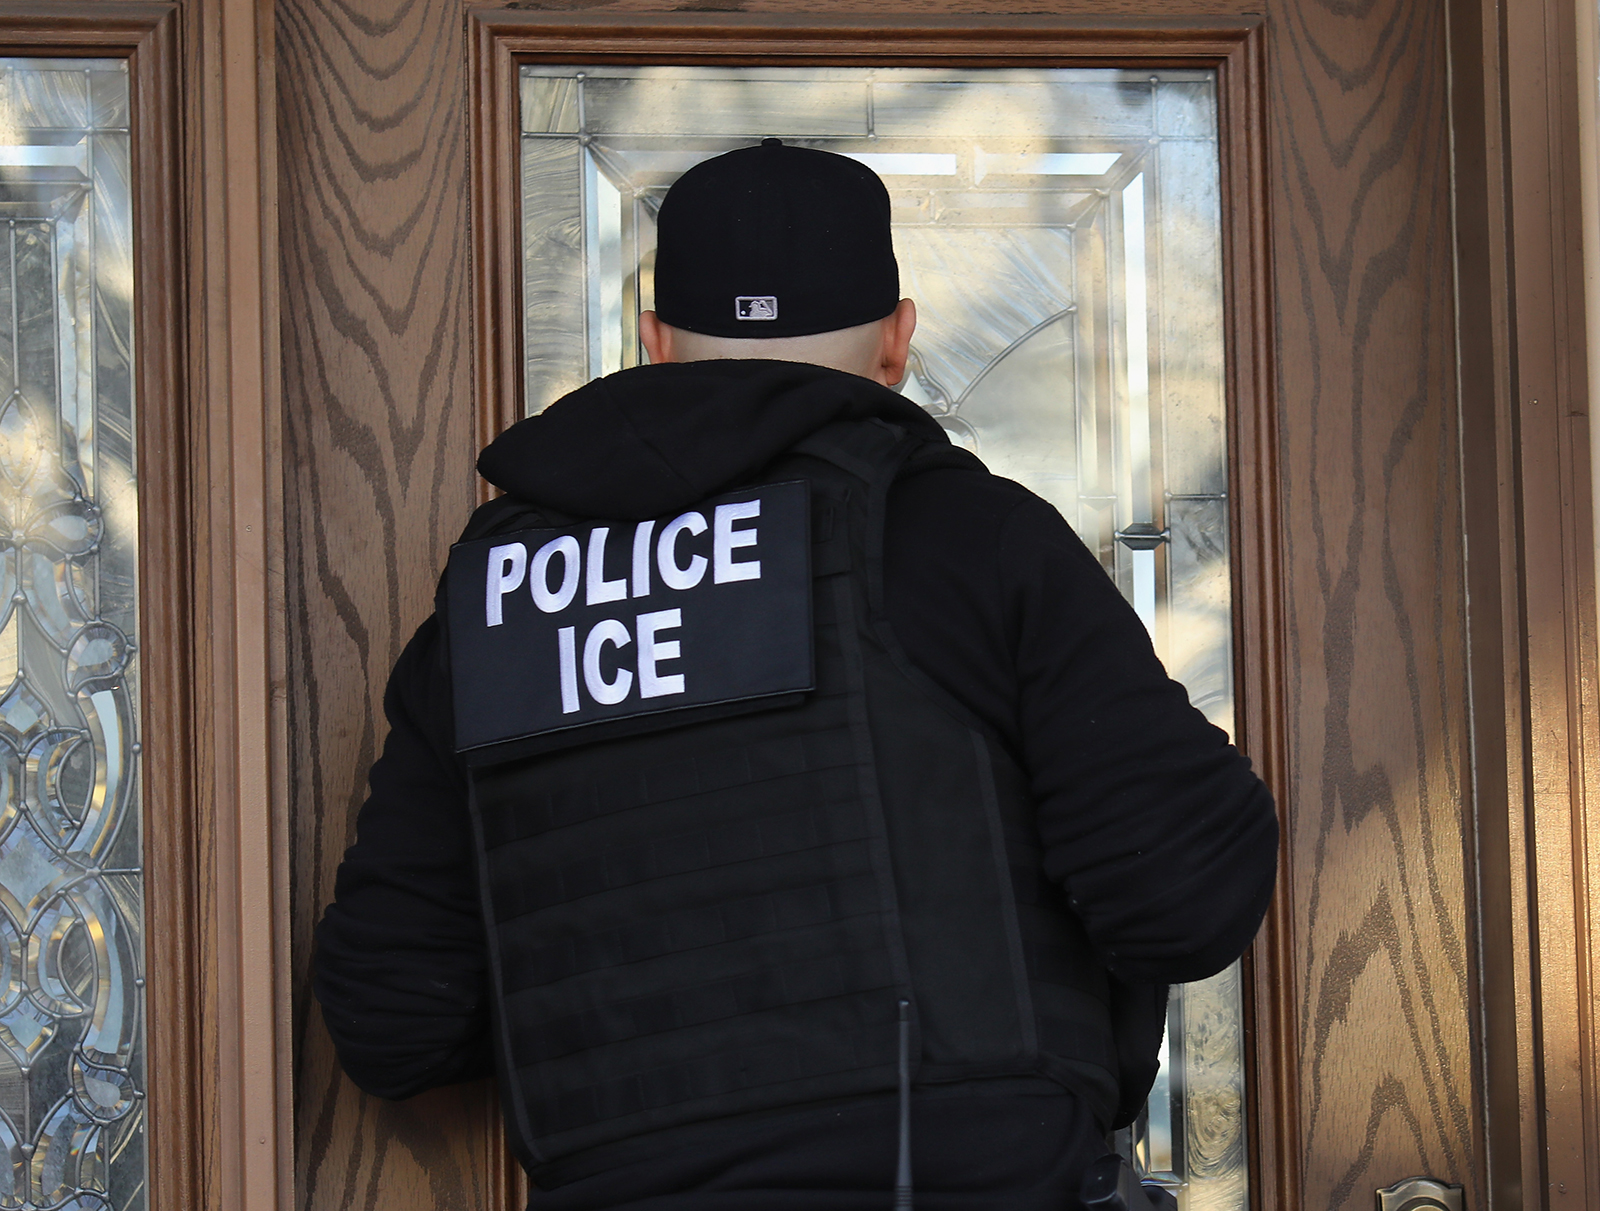 ICE detainee alleges officers beat him after he refused to comply with illegal deportation